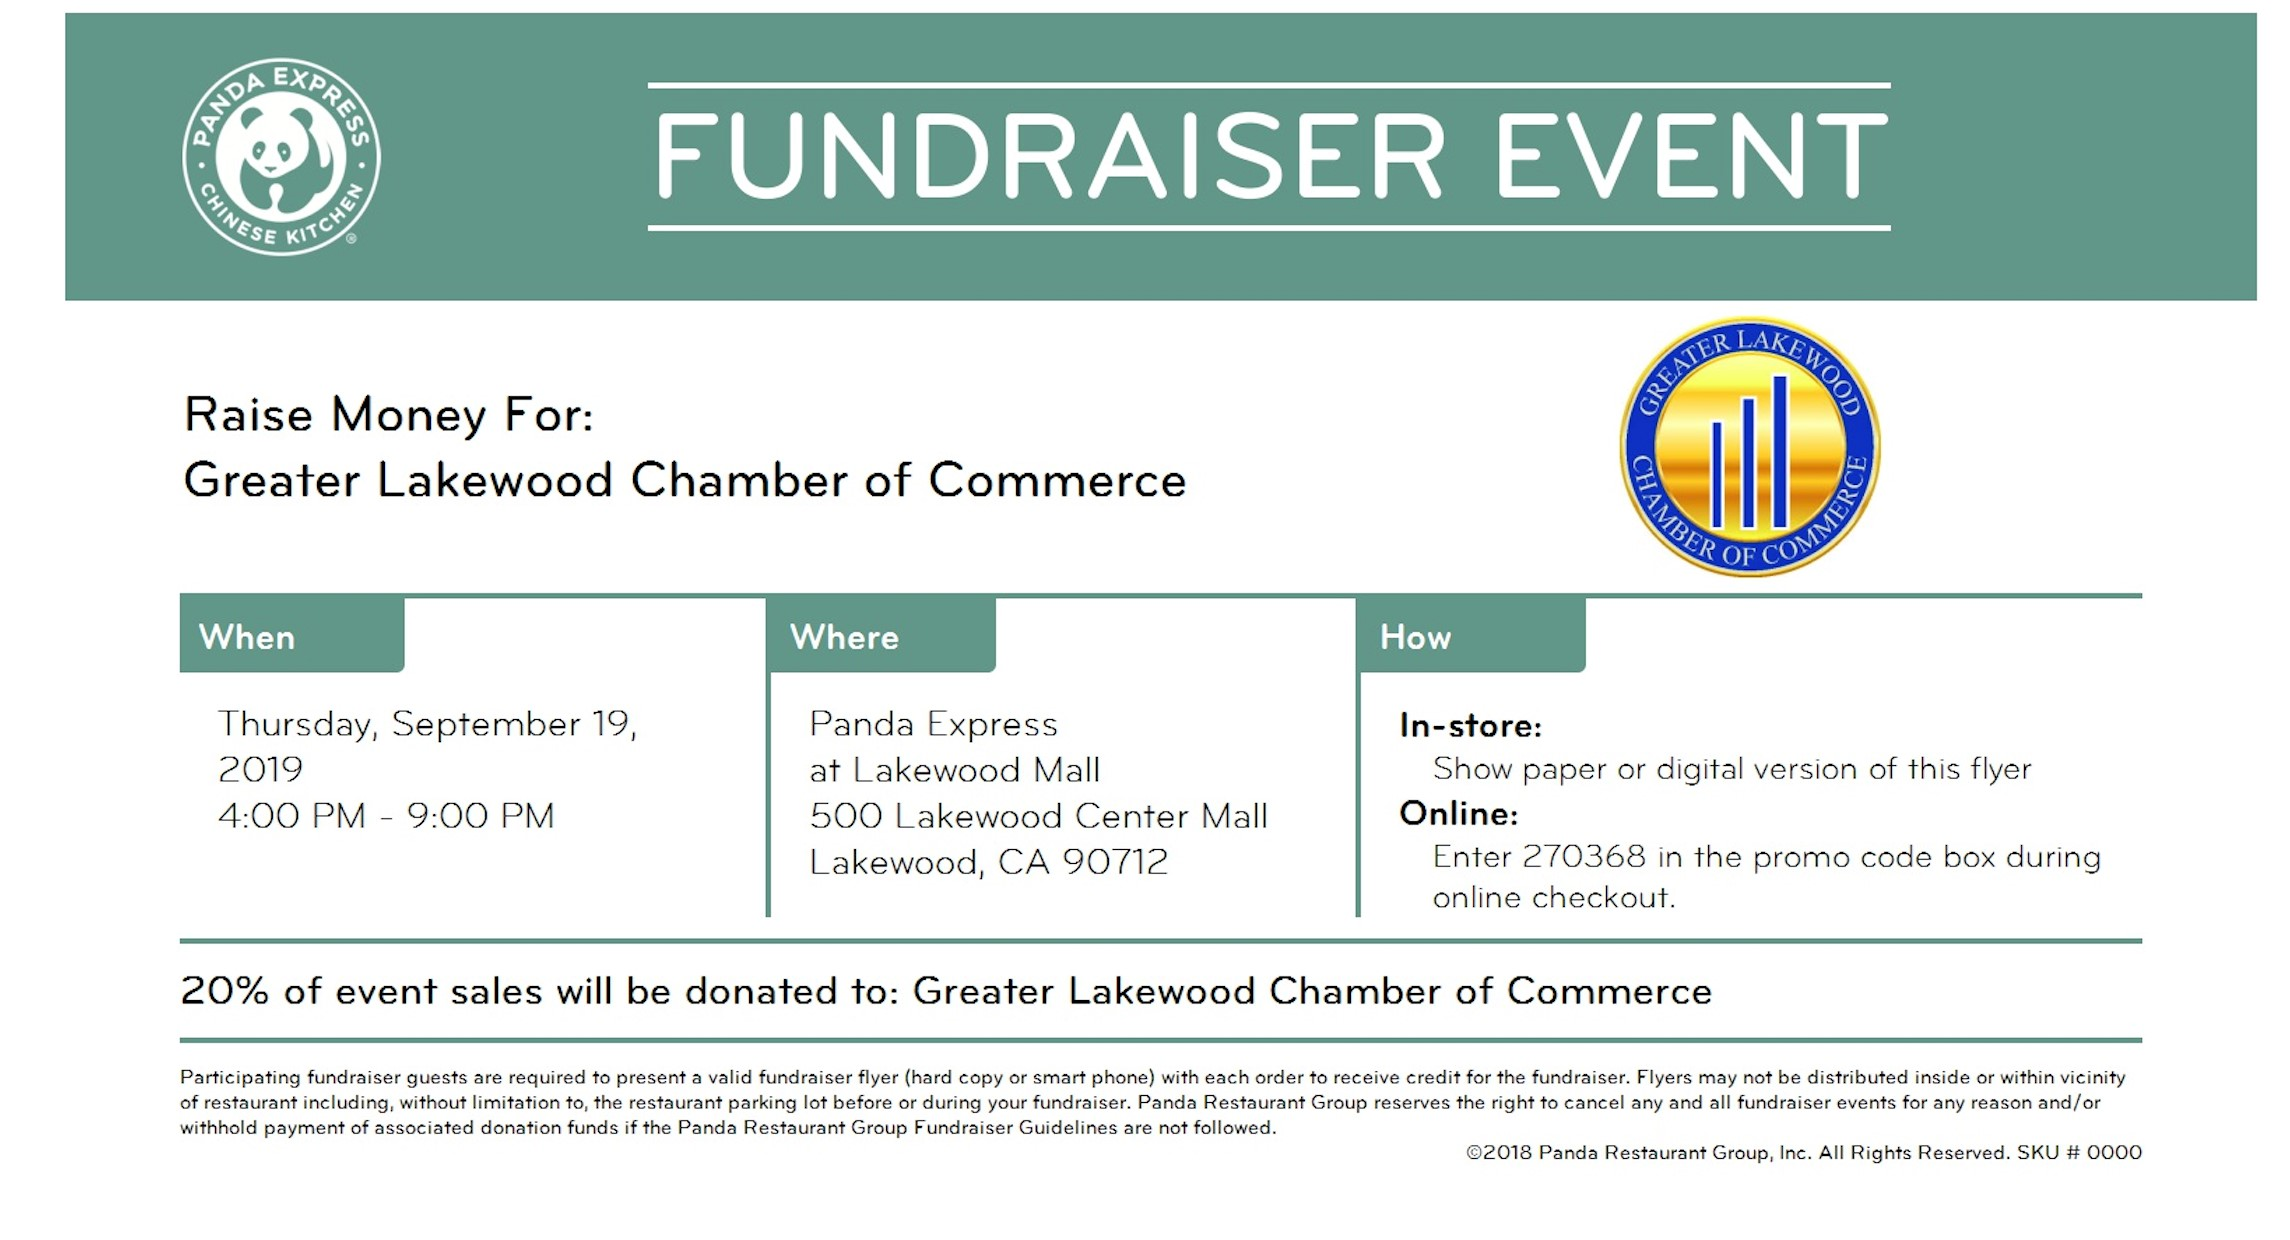 Panda Express flyer with fundraiser information for September 19, 2019 4pm to 9pm. 20% of event sales will be donated to Greater Lakewood Chamber of Commerce